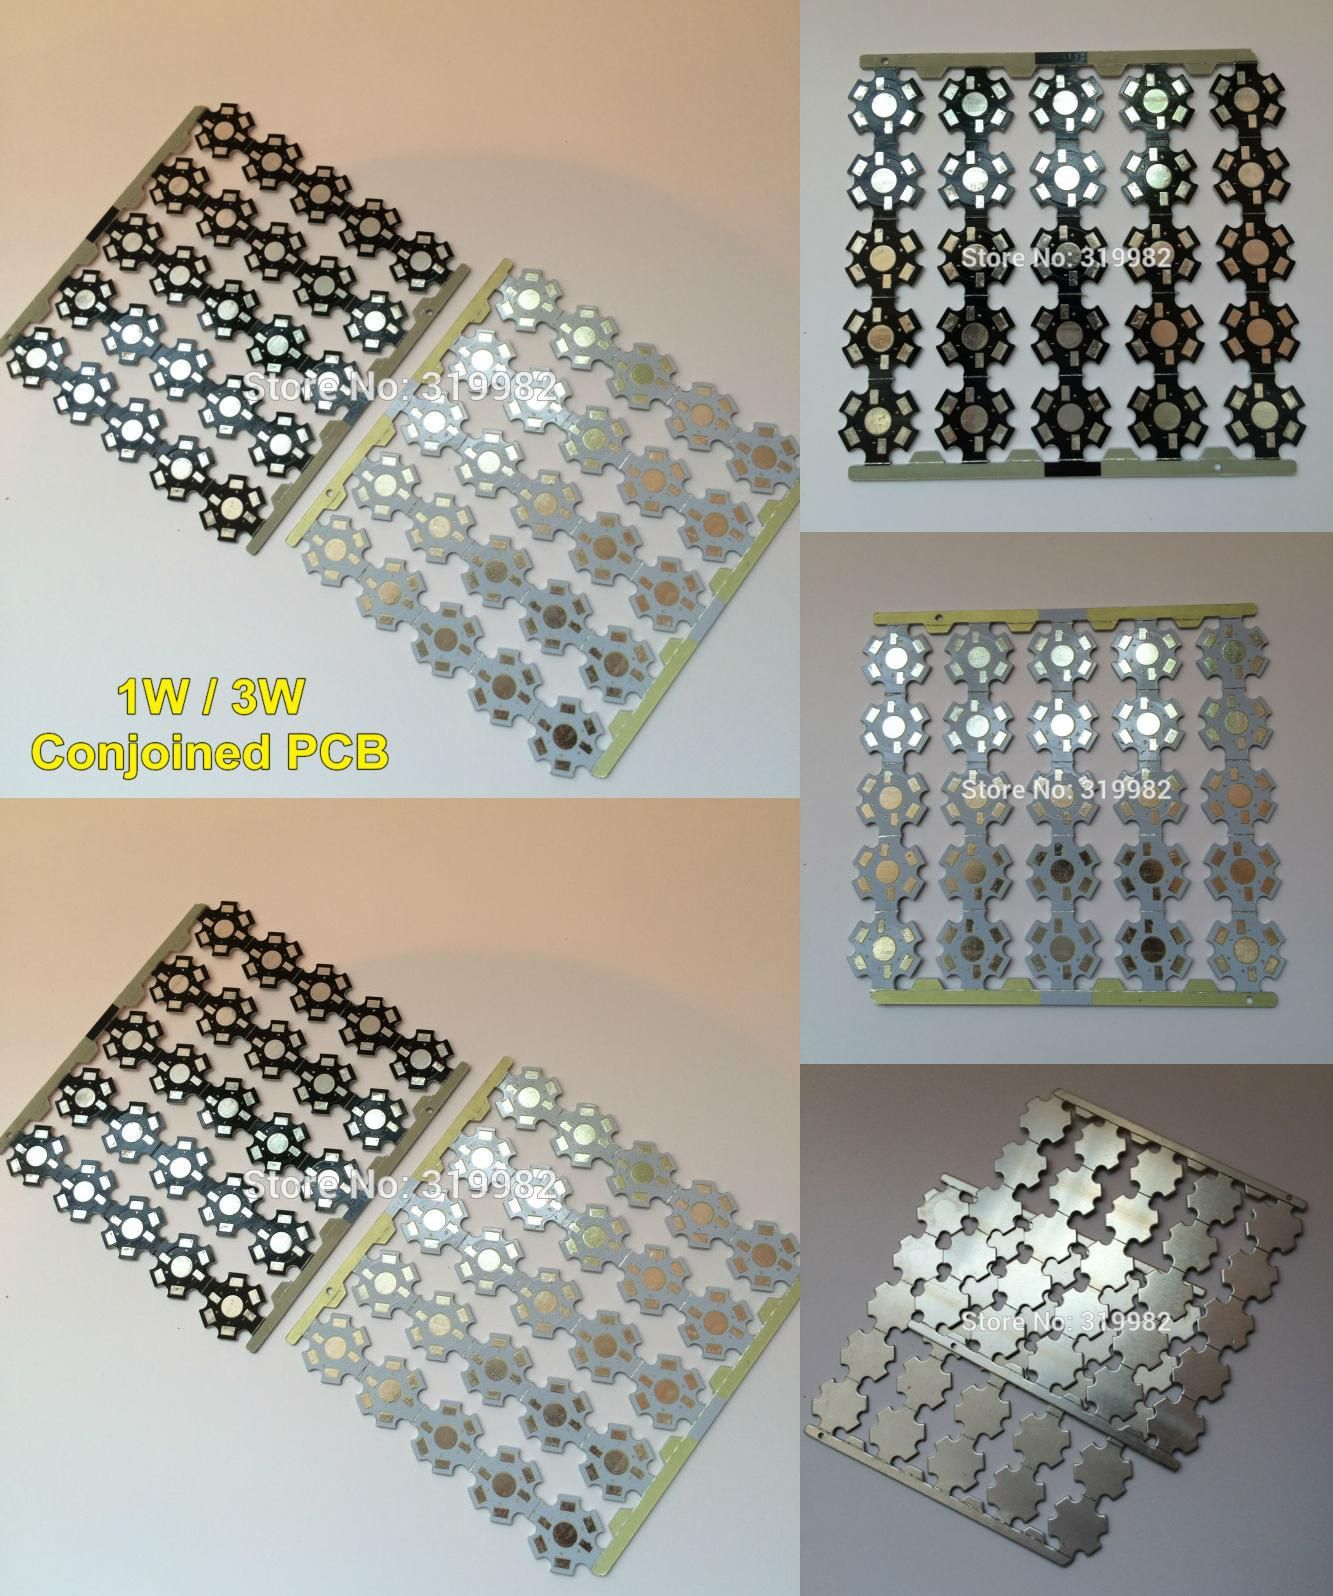 25 pcs//lot  LED star PCB Board for 1W 3W 5W Single LEDs High Power LED Heatsink